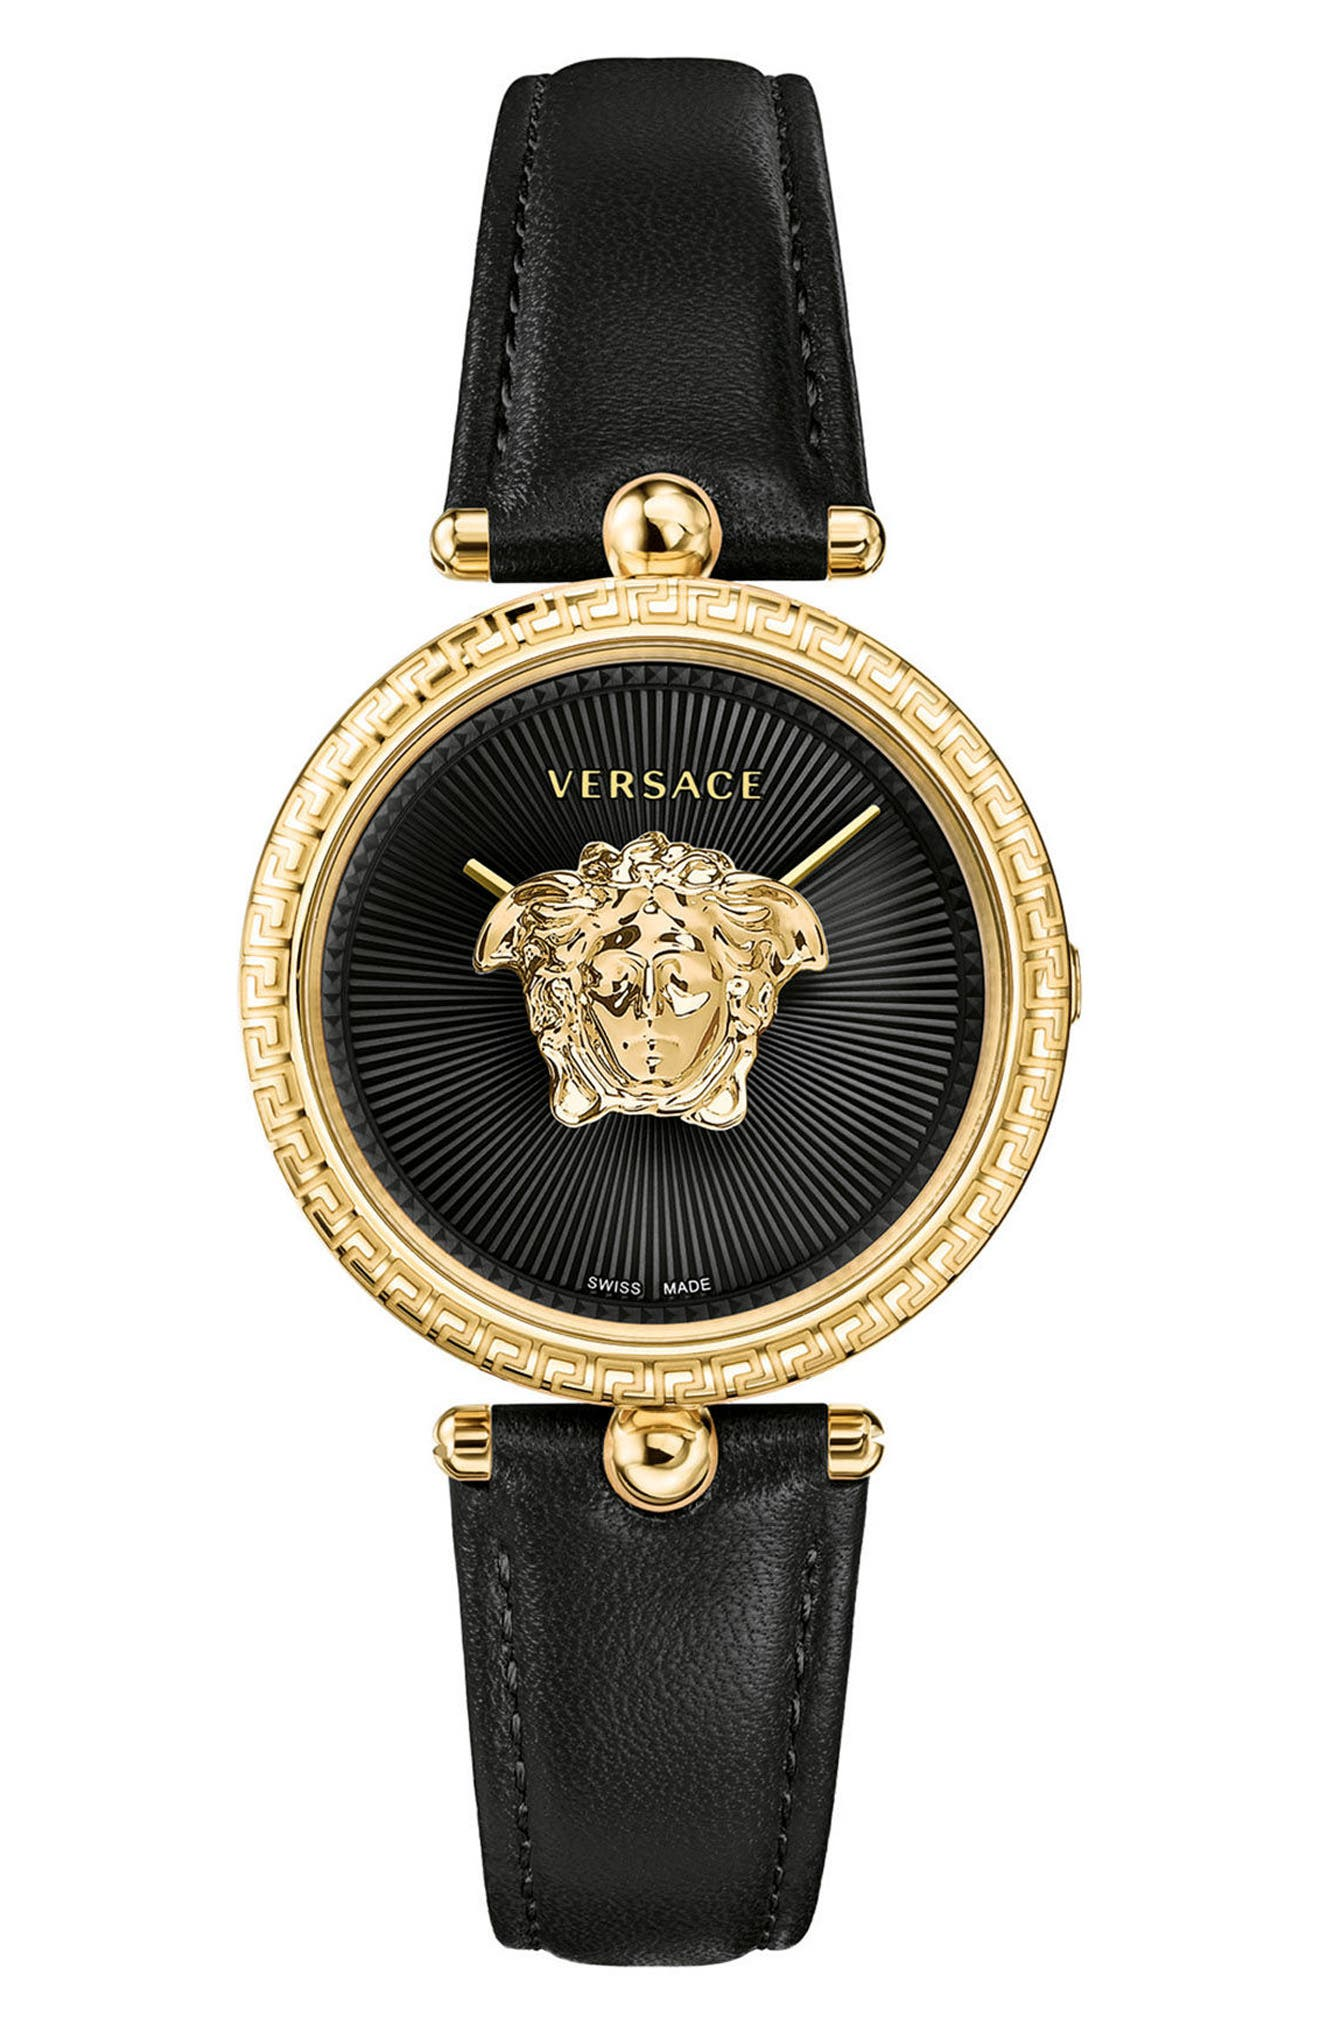 Image of Versace Women's Palazzo Empire Black Leather Watch, 34mm